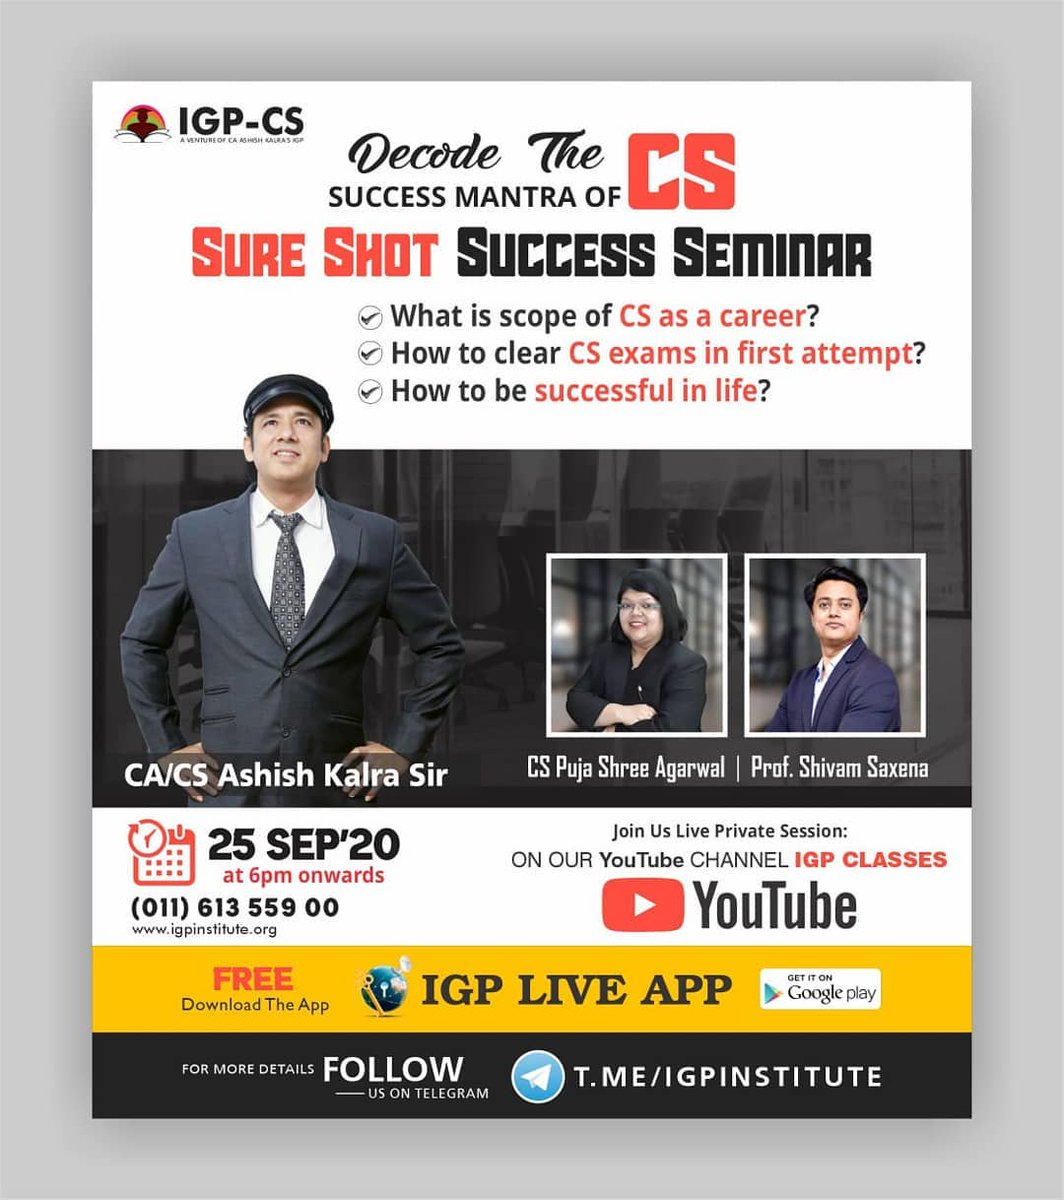 Join Us #LIVE🔴 👉Sure Shot #Success #Seminar for #CS_Students😍  ✅Get your Questions Answered by #CA Ashish Kalra Sir👍  Seminar Date : 25th Sep'20 at 6pm Onwards on our YouTube Channel #IGP Classes  #SuccessSeminar #SuccessMantra #CSstudents #CSexams #IGPClasses #CAashishkalra https://t.co/8DhUyXtm43